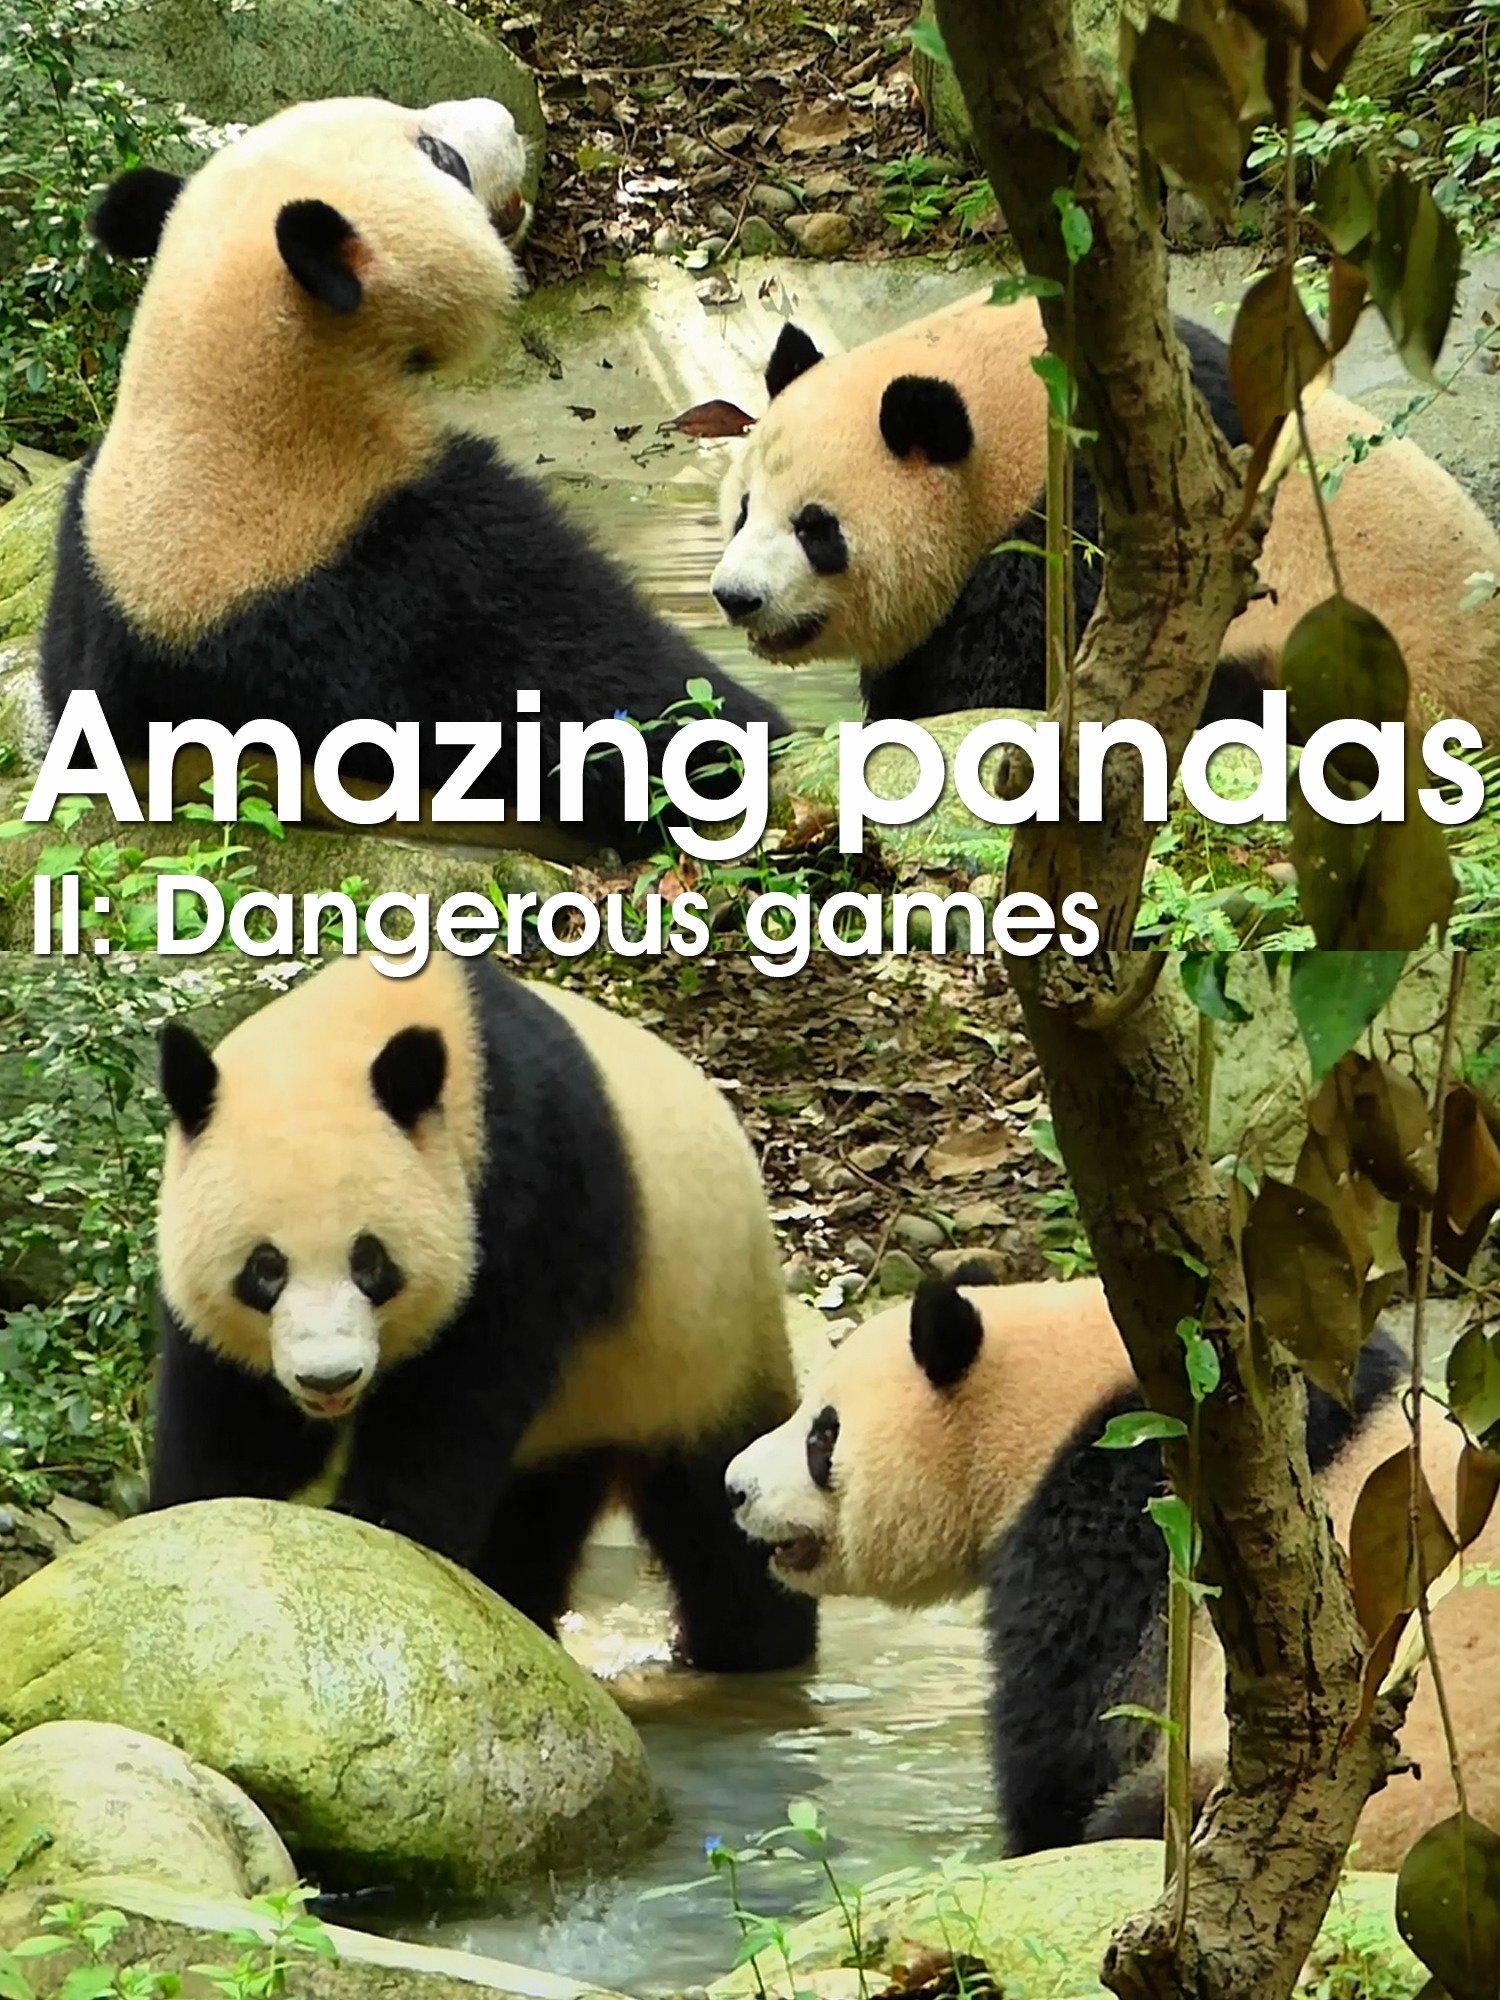 Amazing pandas. II. Dangerous games